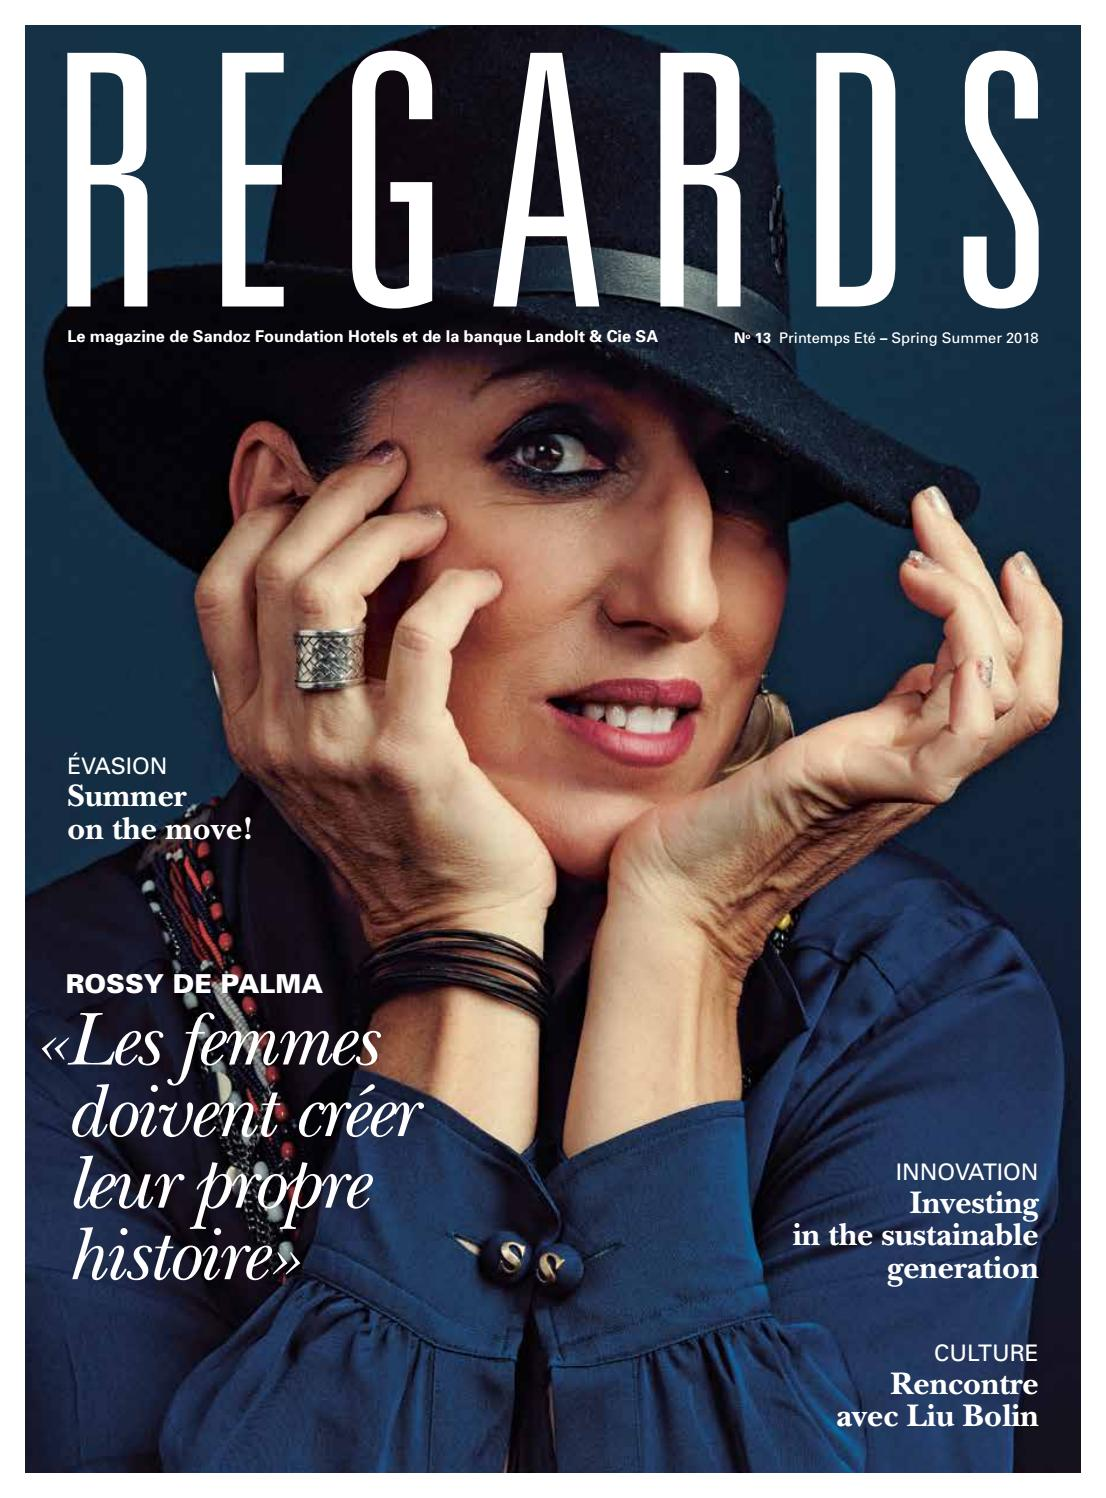 Regards n°13 by Inédit Publications SA - issuu 4f391aea7d3f